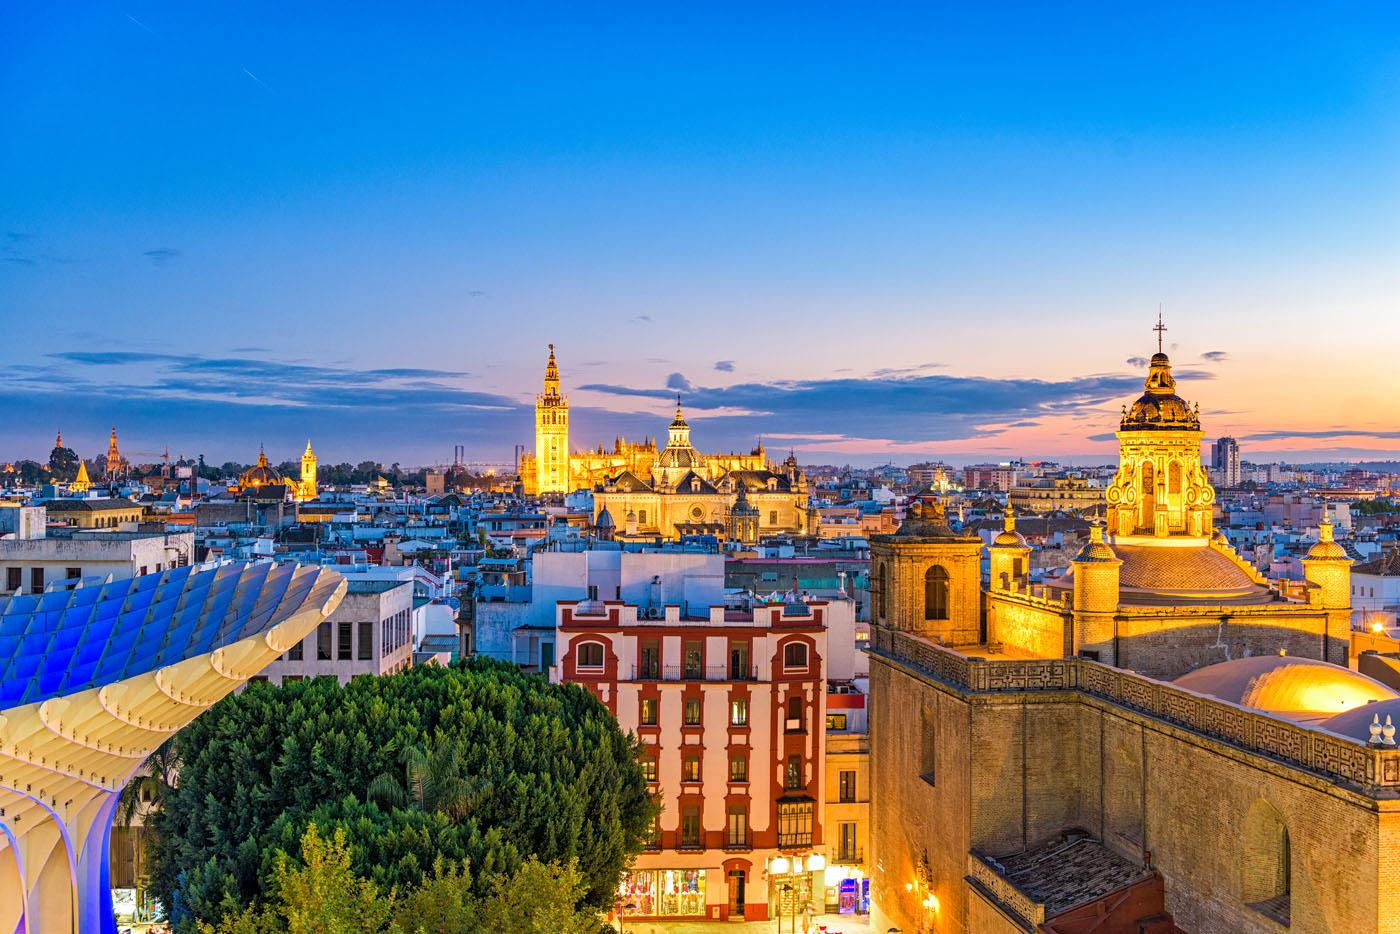 Meeting and event planning services in Spain. Event planning and management in Spain